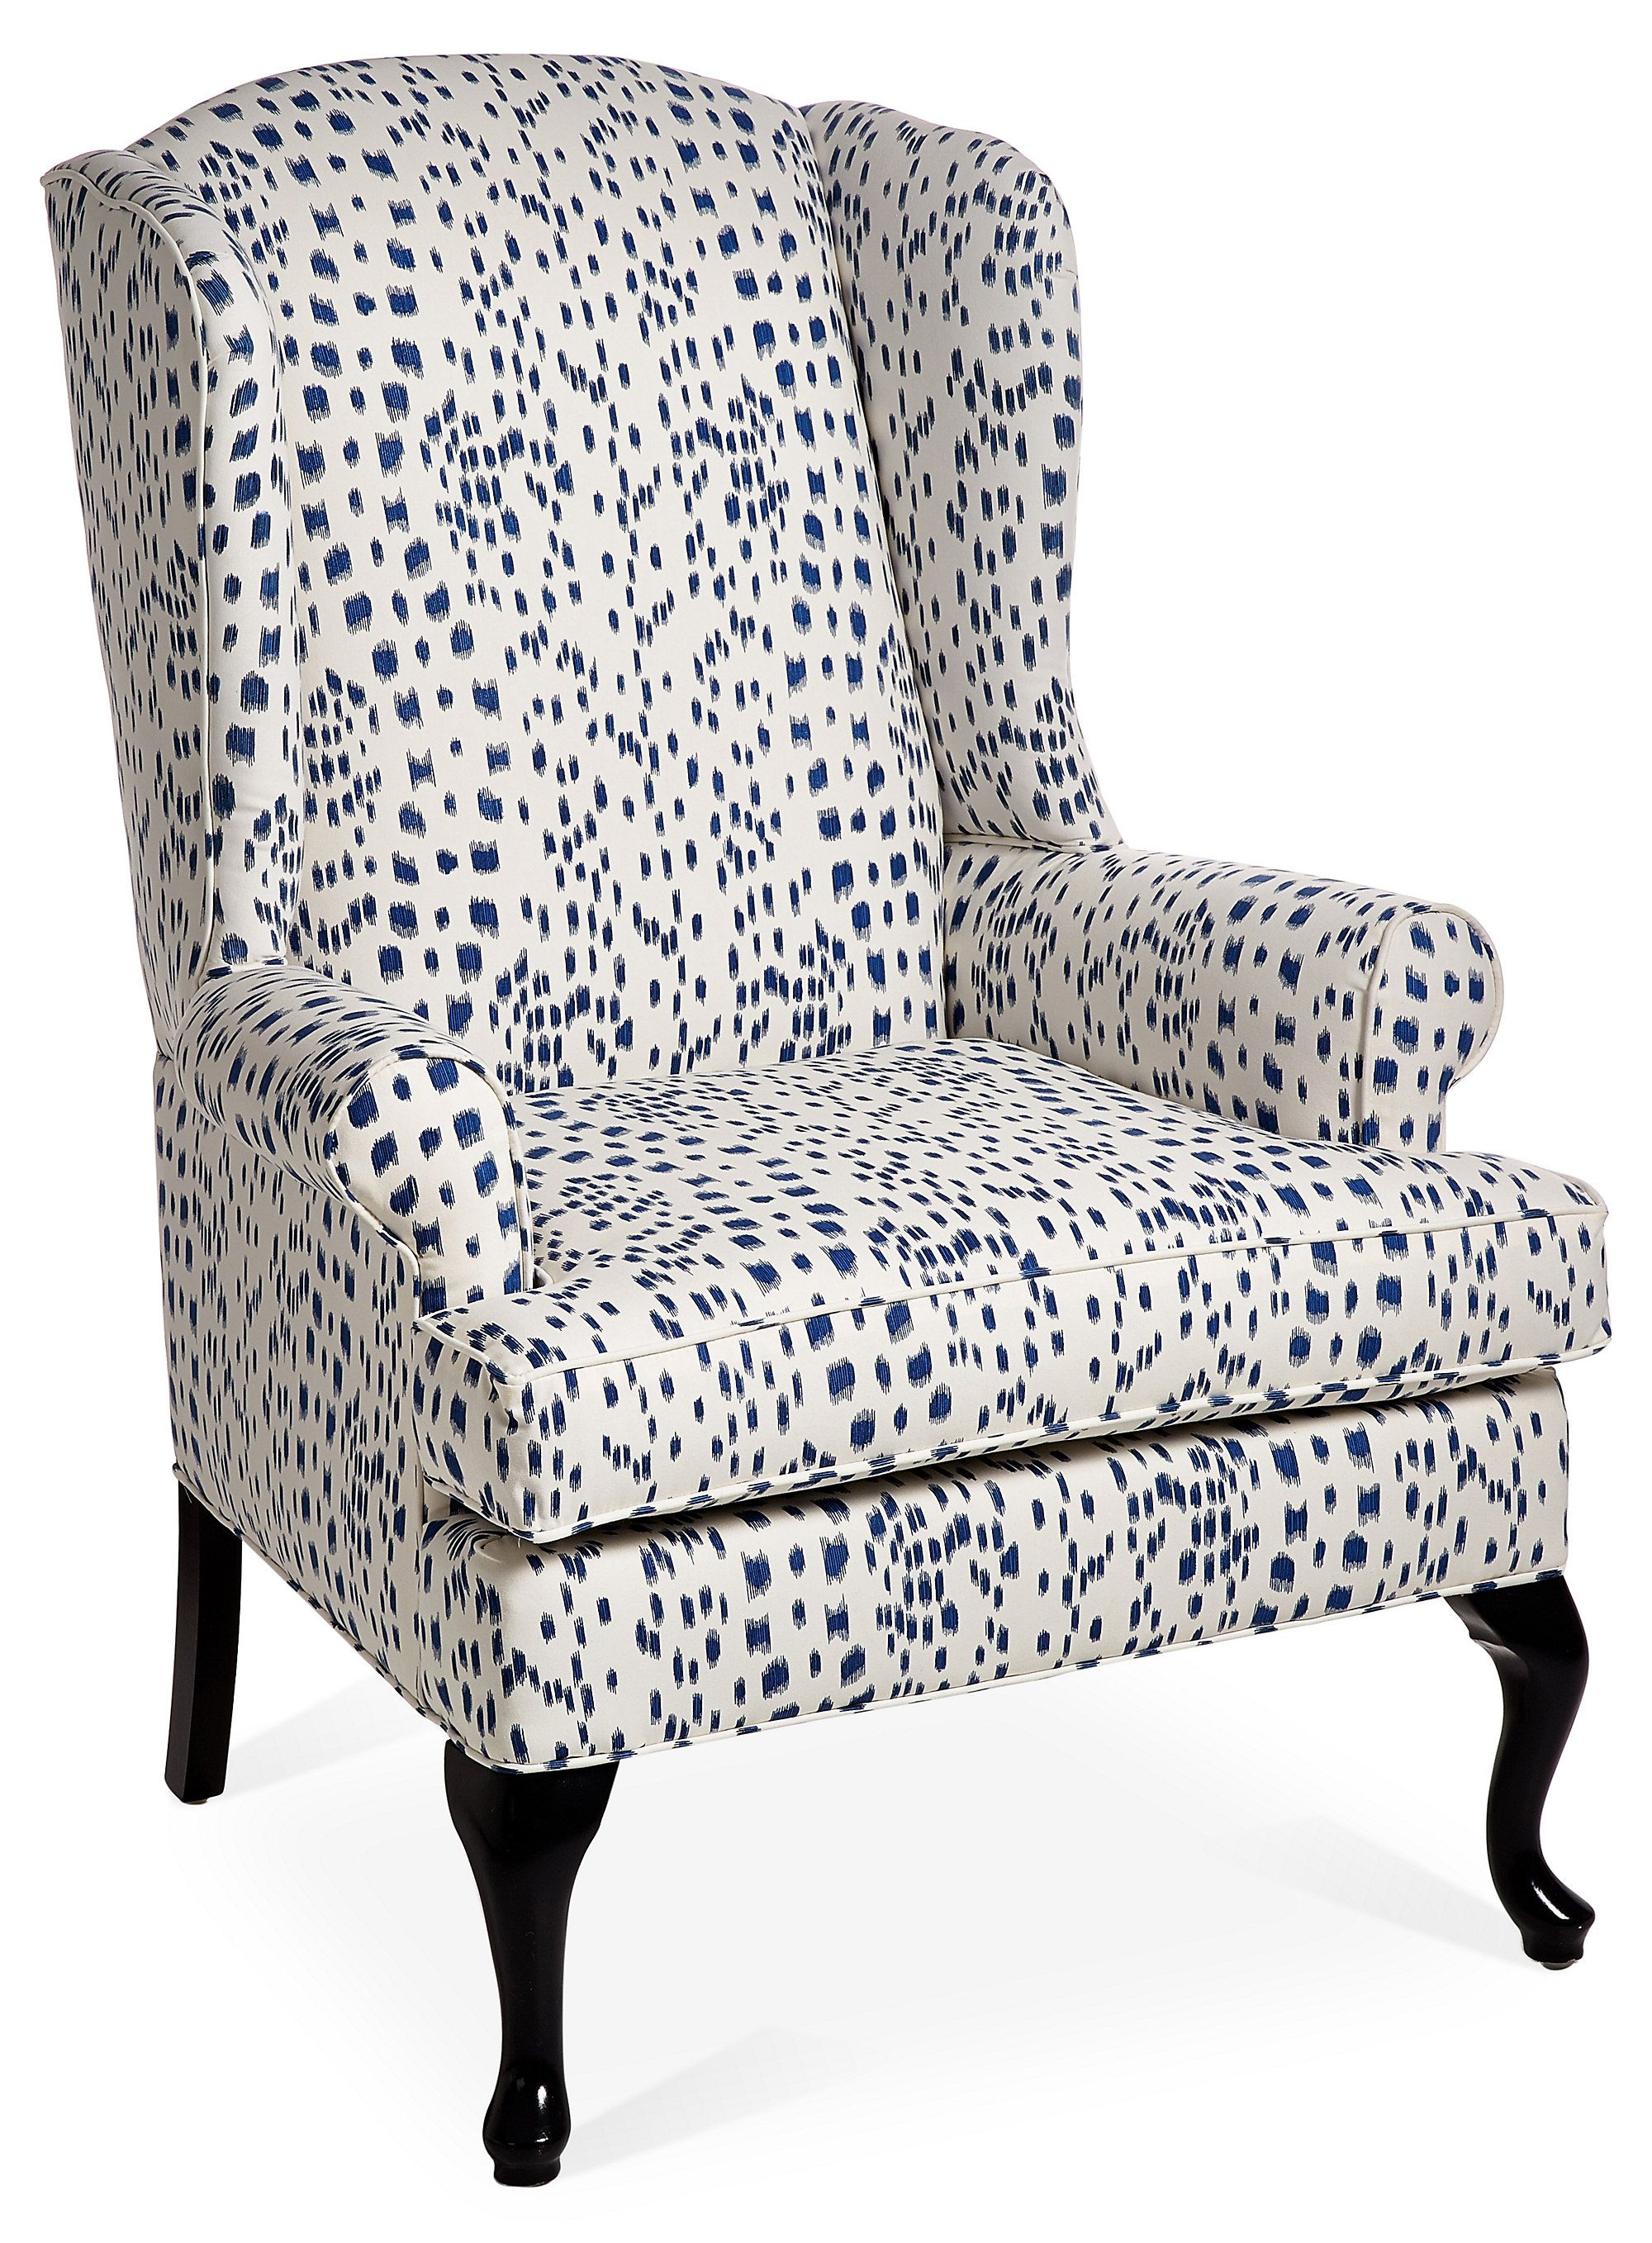 Blue And White Chair The Classic Wingback Chair Gets A Modern Update With